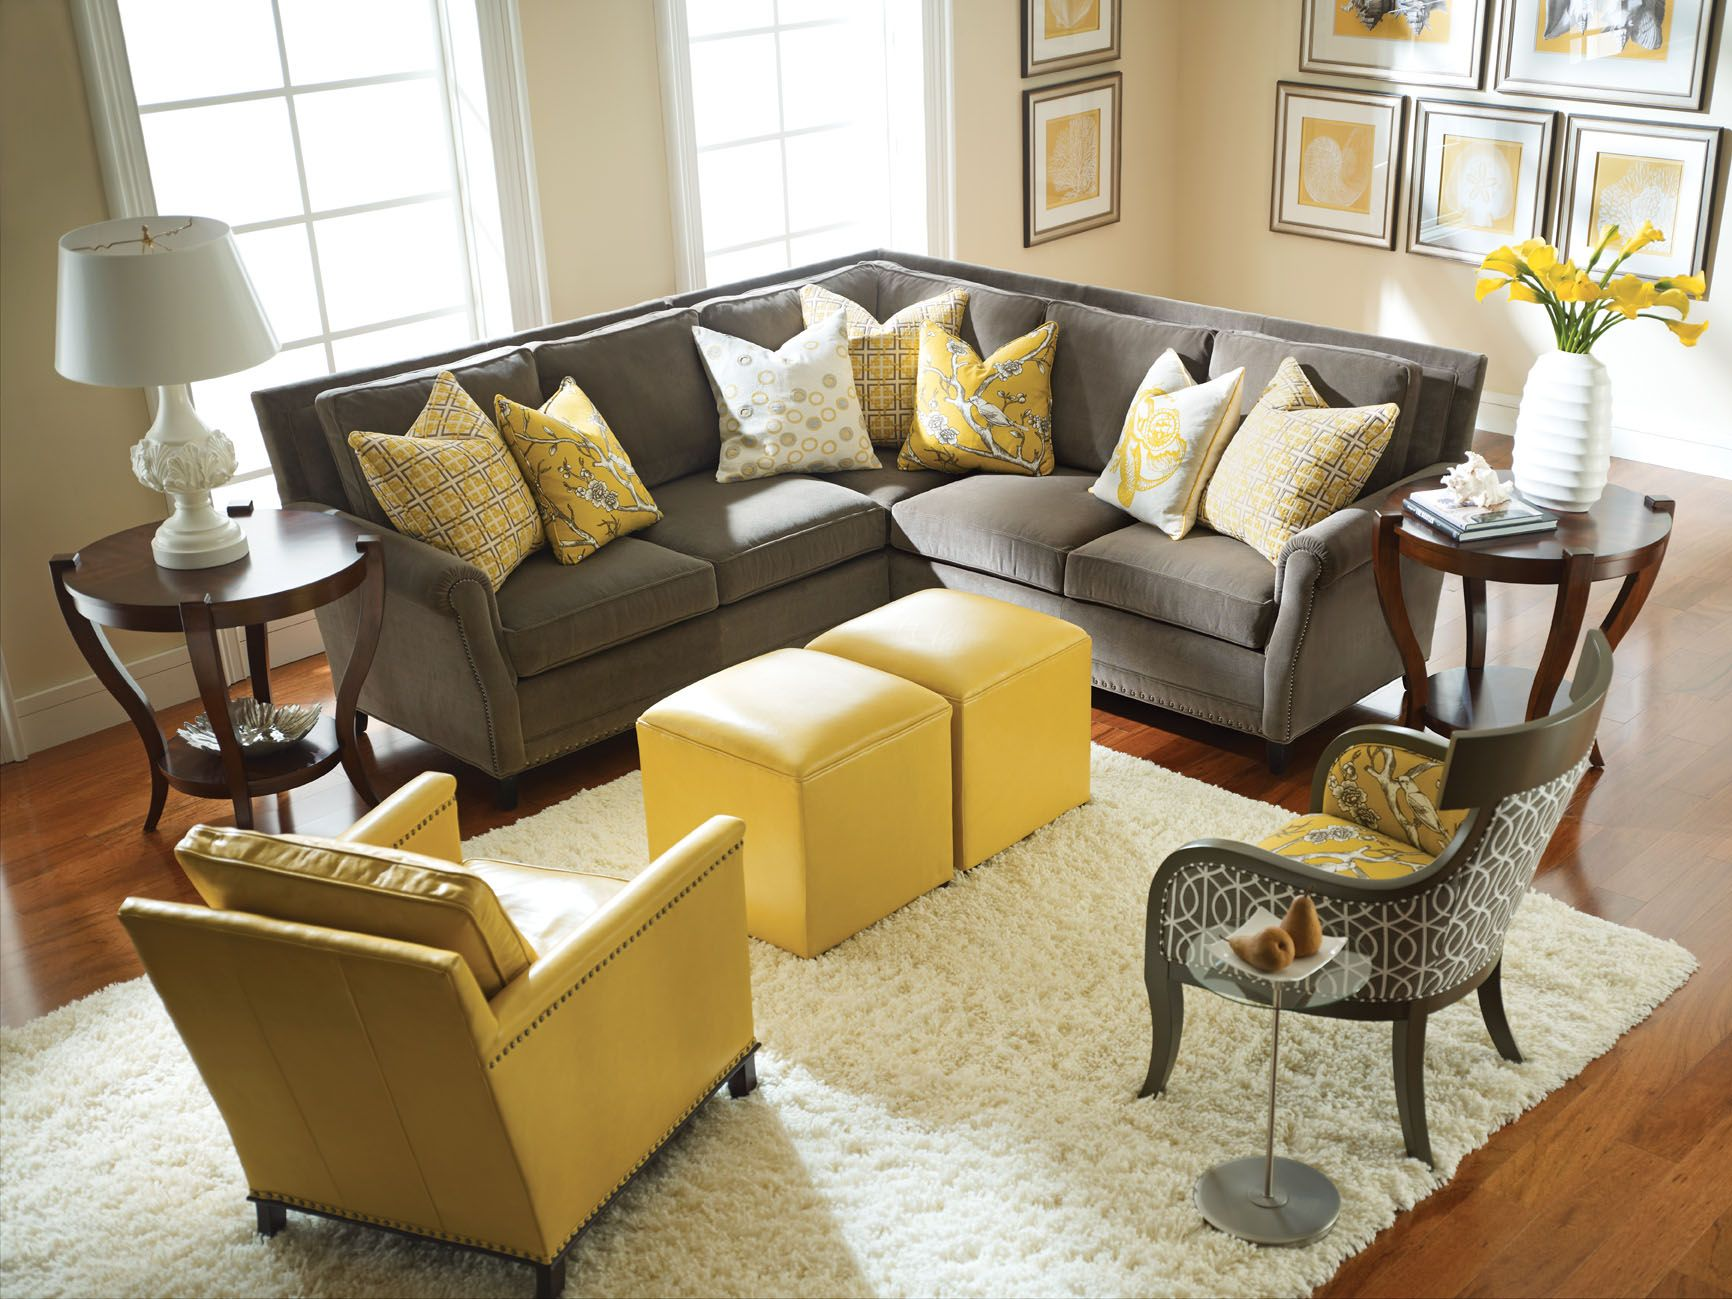 Living Room Yellow Ideas yellow and gray rooms | decorating | pinterest | living room, room